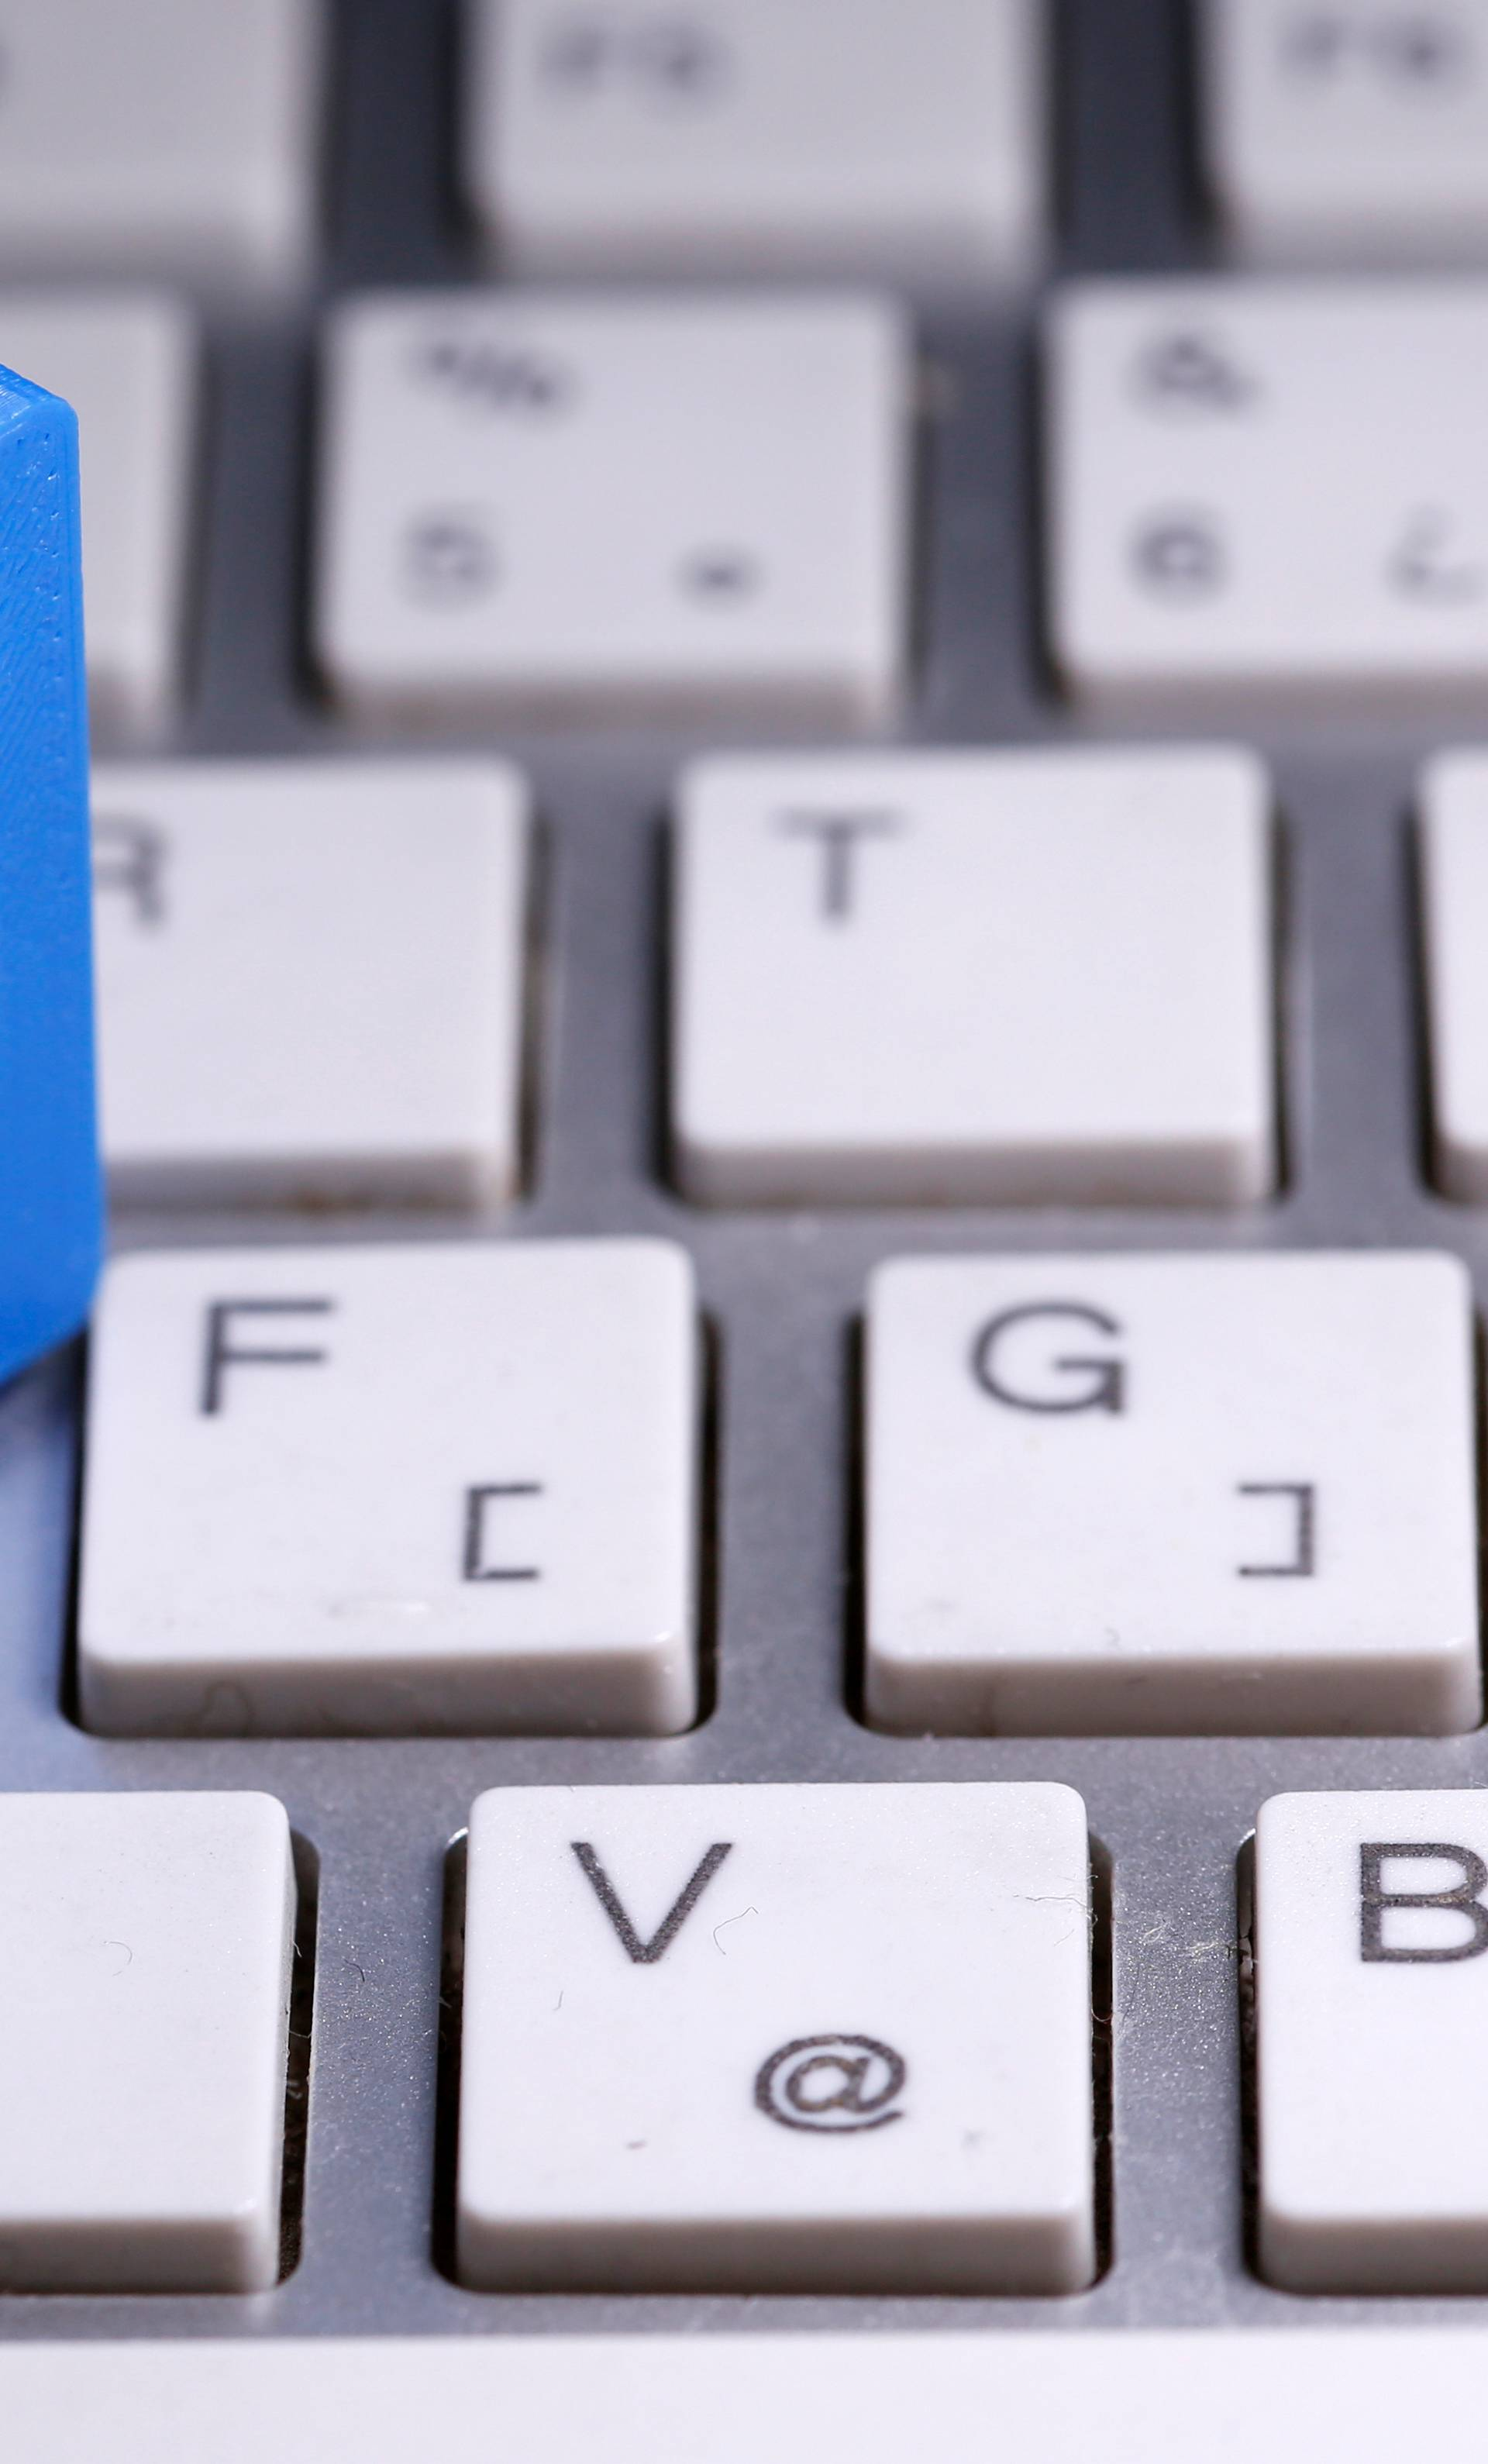 A 3D-printed Facebook logo is seen placed on a keyboard in this illustration